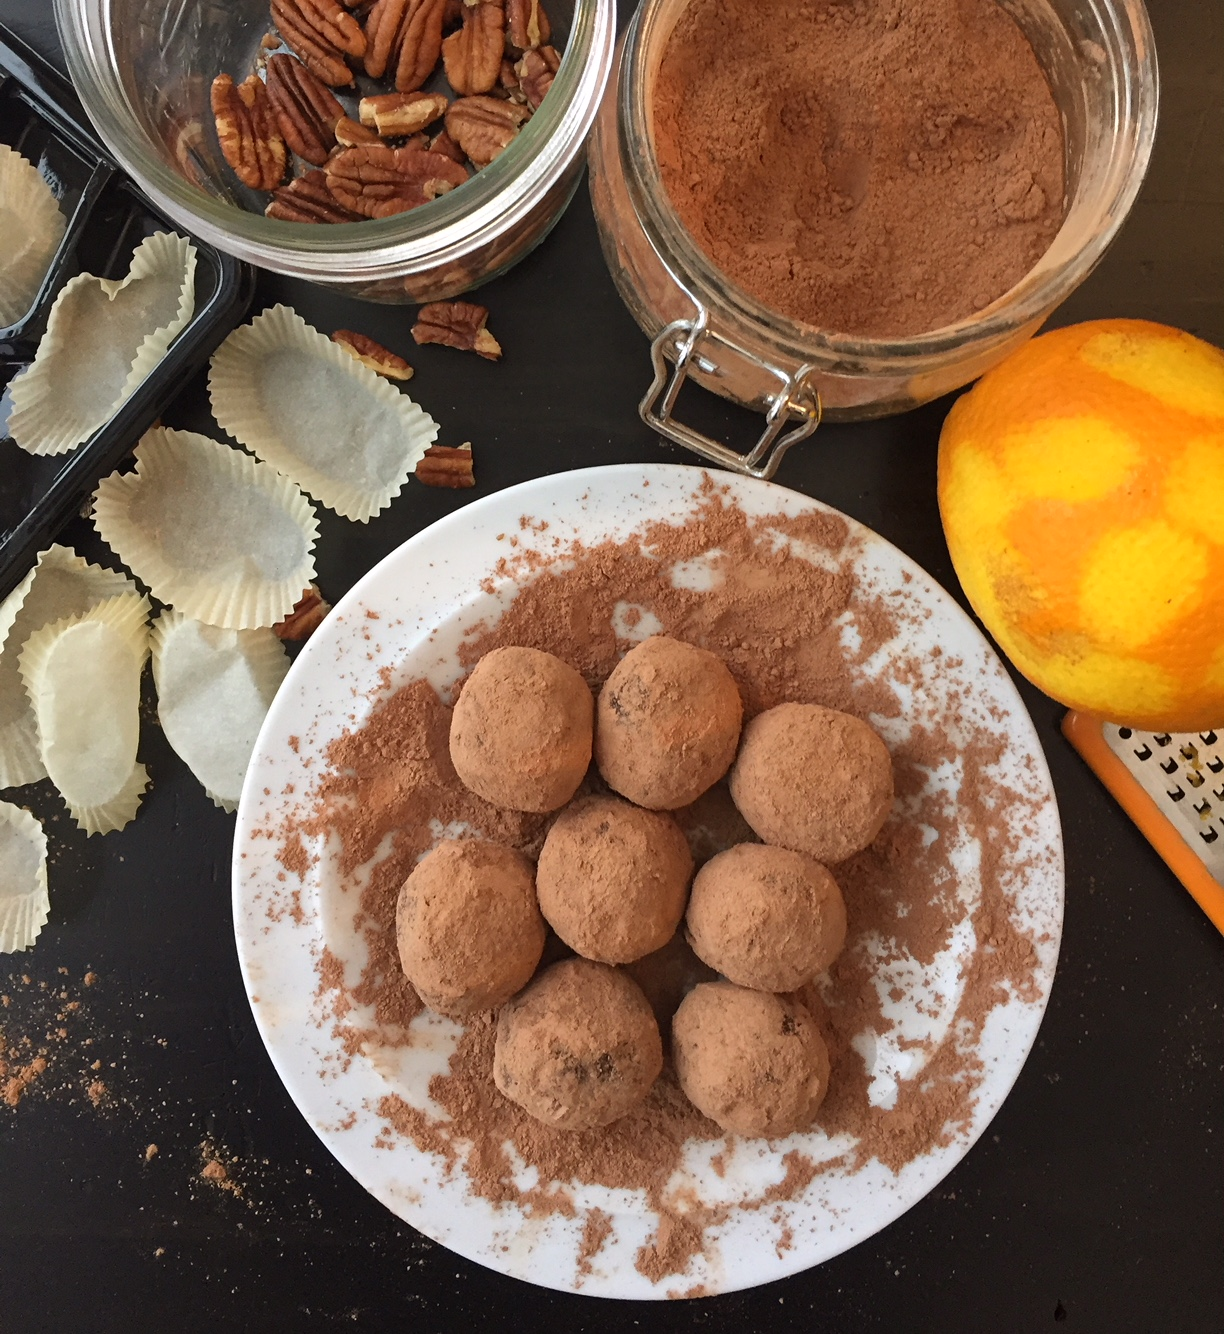 Chocolate Cacao Date Truffles